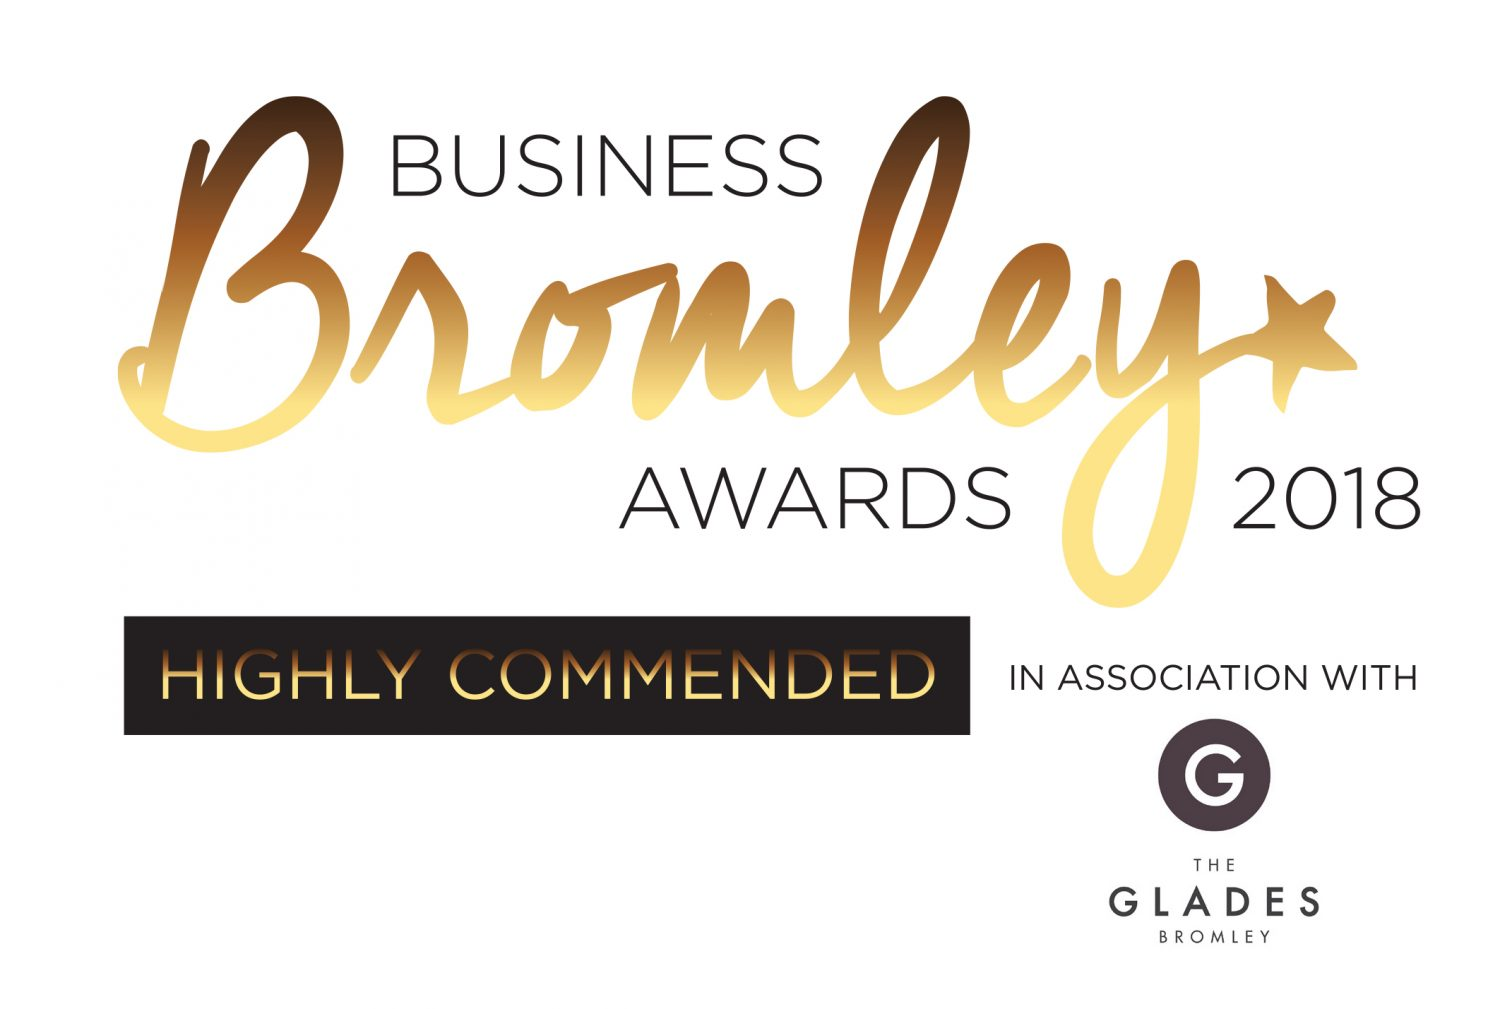 Bromley-Business-Awards-Logo-2018-HIGHLY-COMMENDED-LOGO-e1543852235425